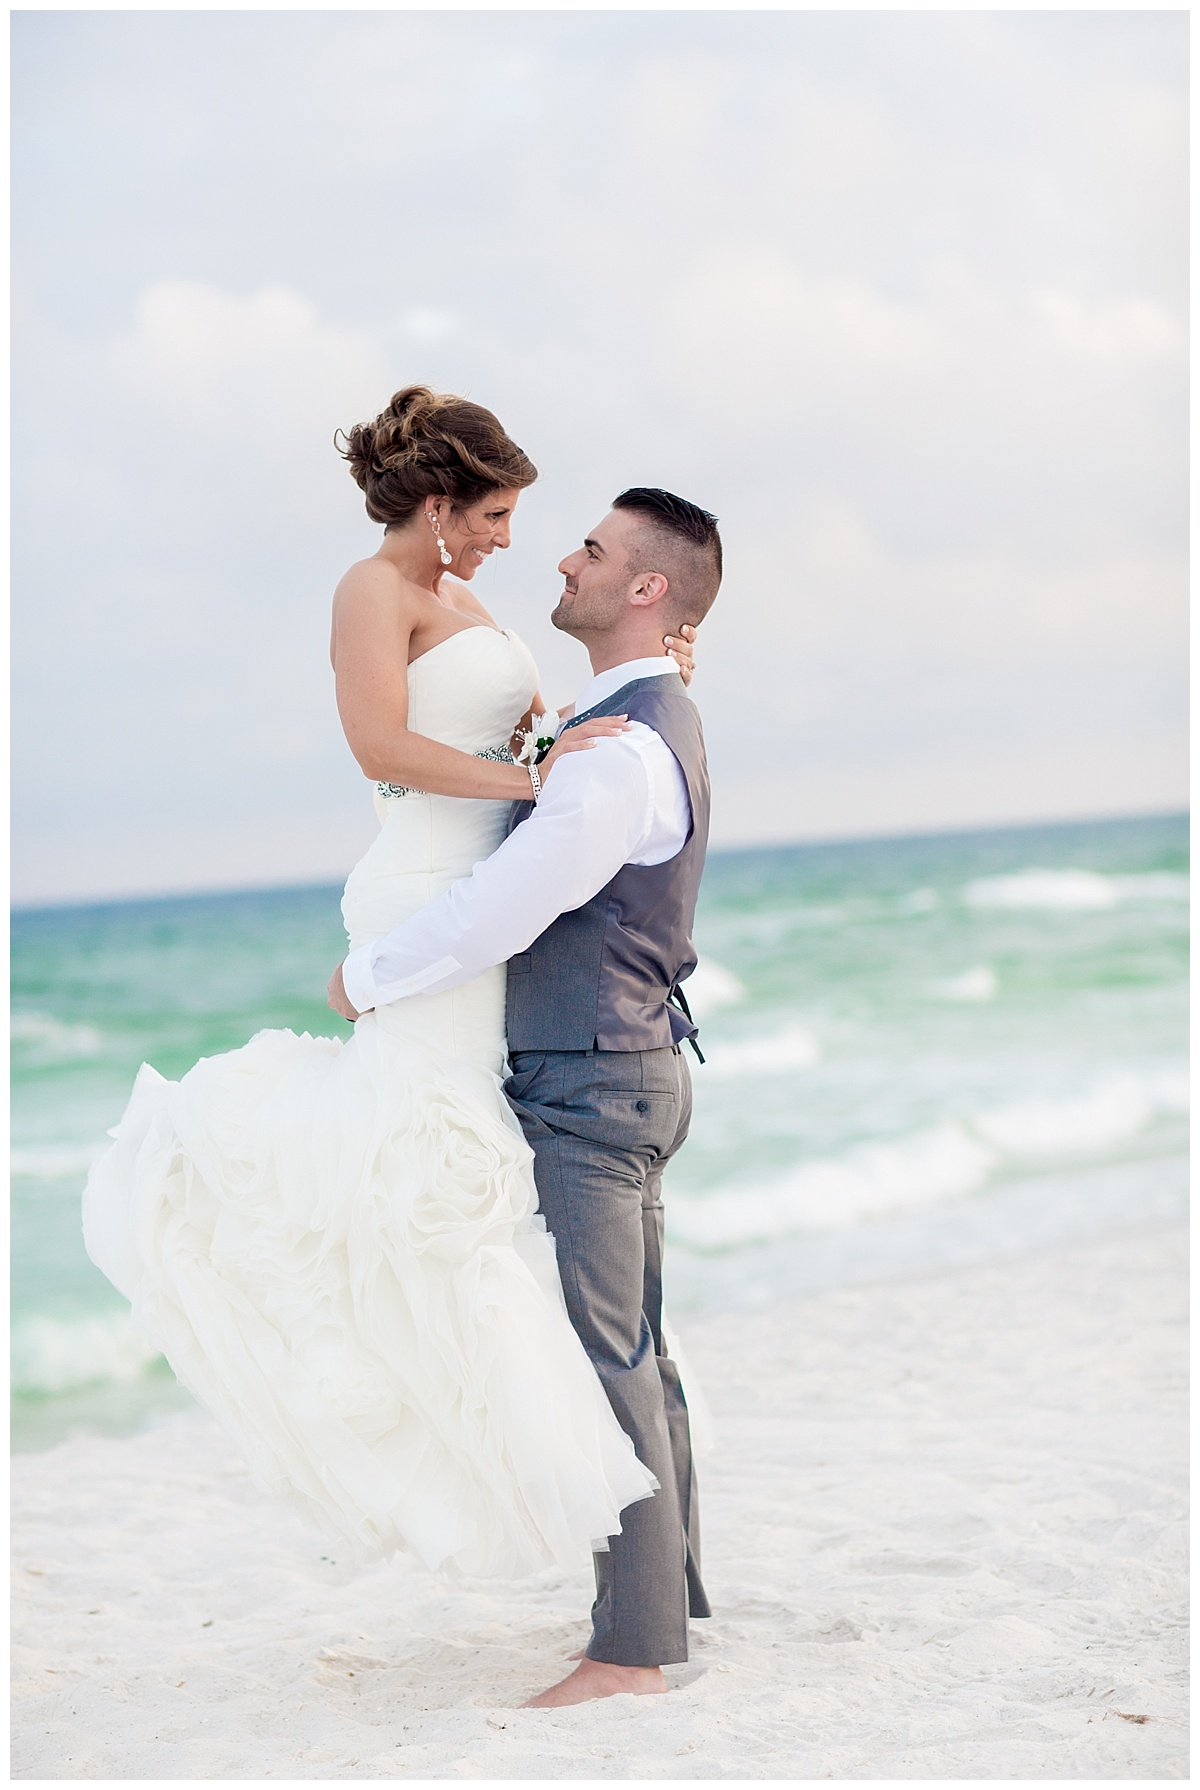 Wedding Poses for Bride and groom